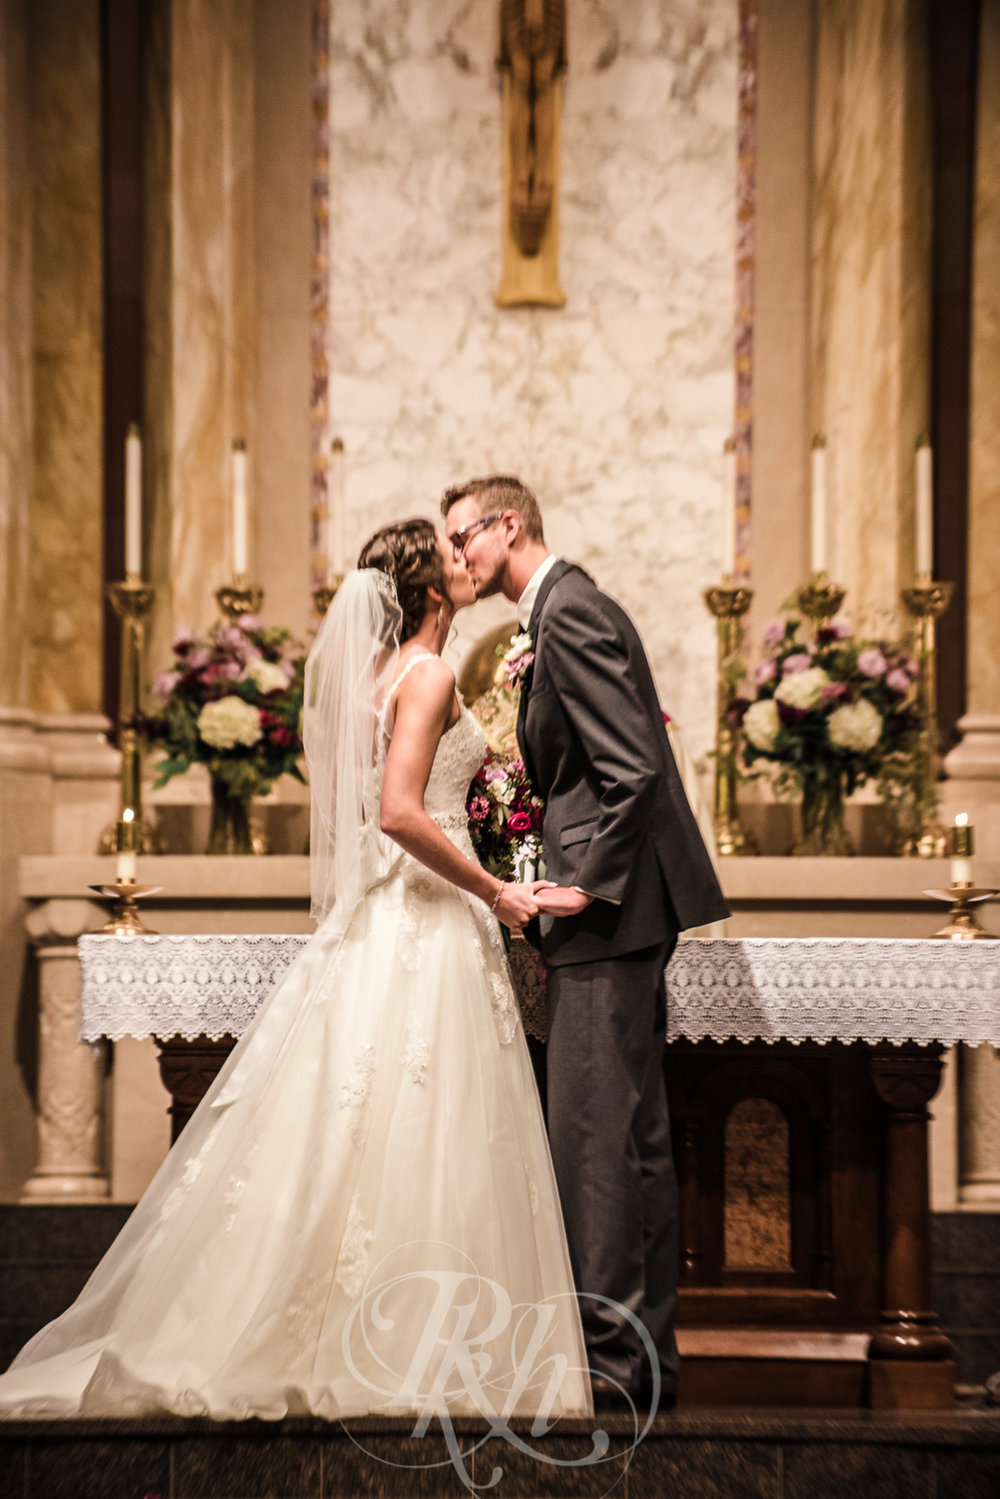 Monica & Zach - Minnesota Wedding Photography - RKH Images - Samples -18.jpg